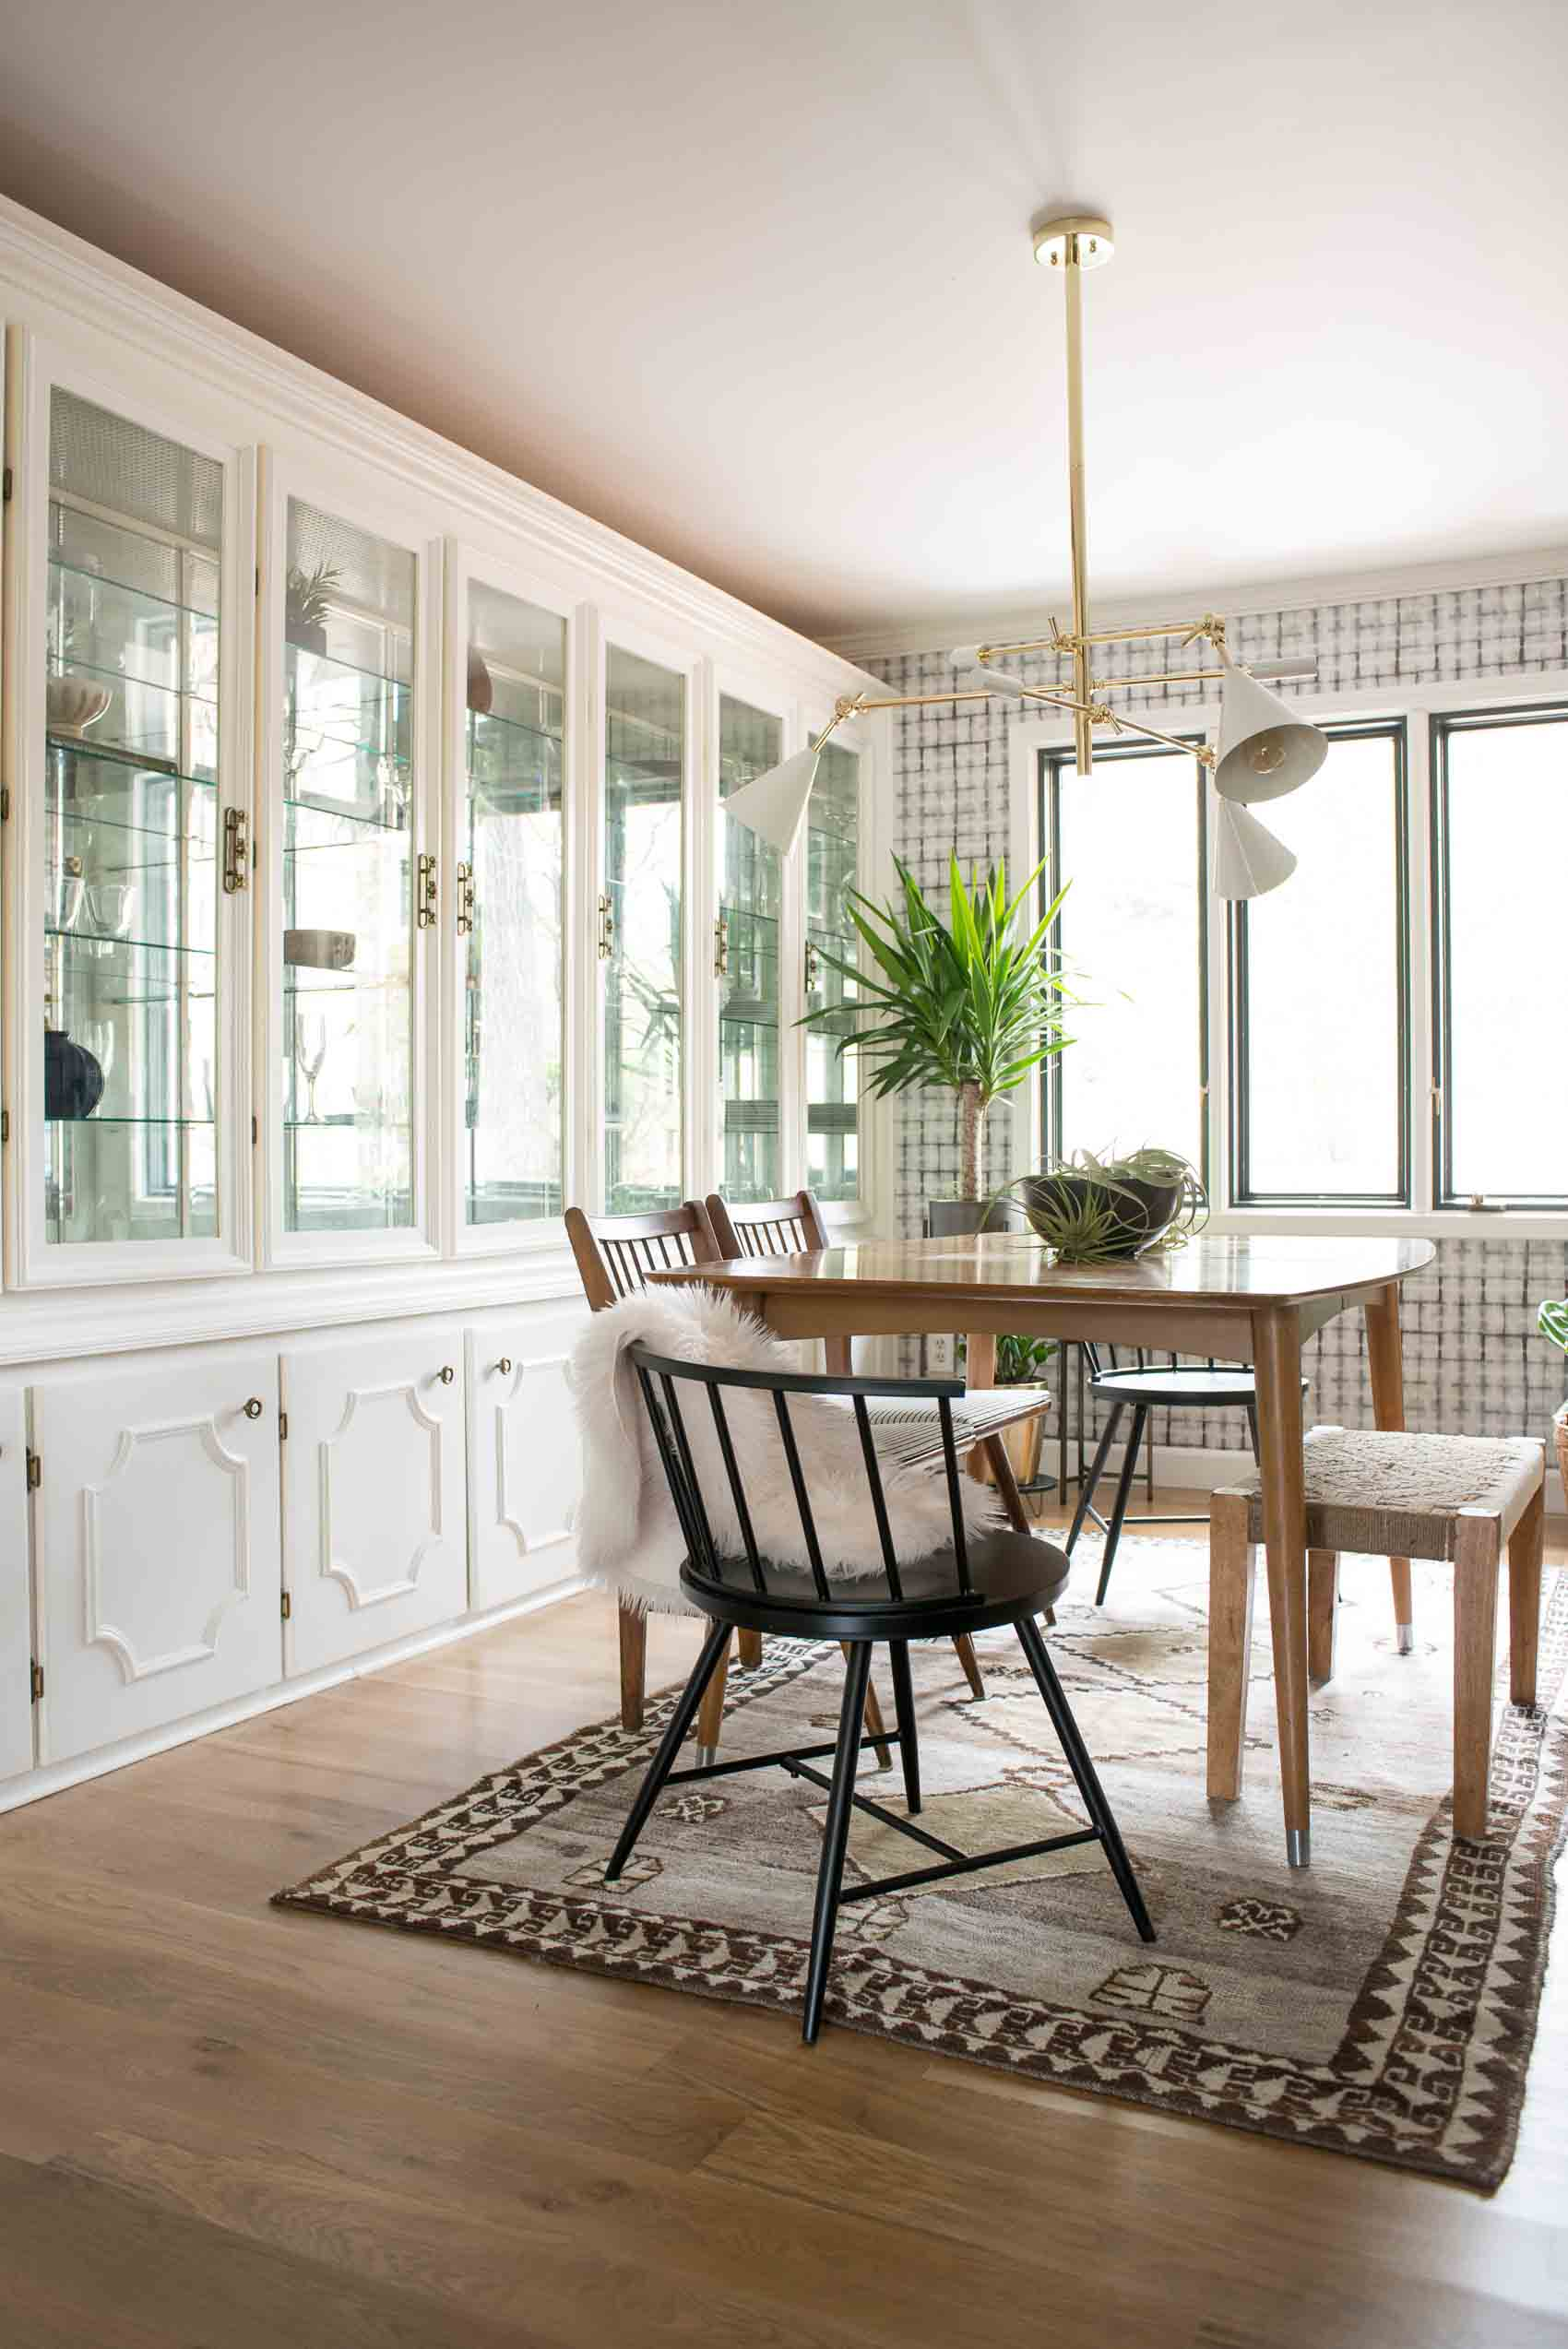 Before & After: A Budget Conscious Kitchen and Dining Room Makeover | Design*Sponge